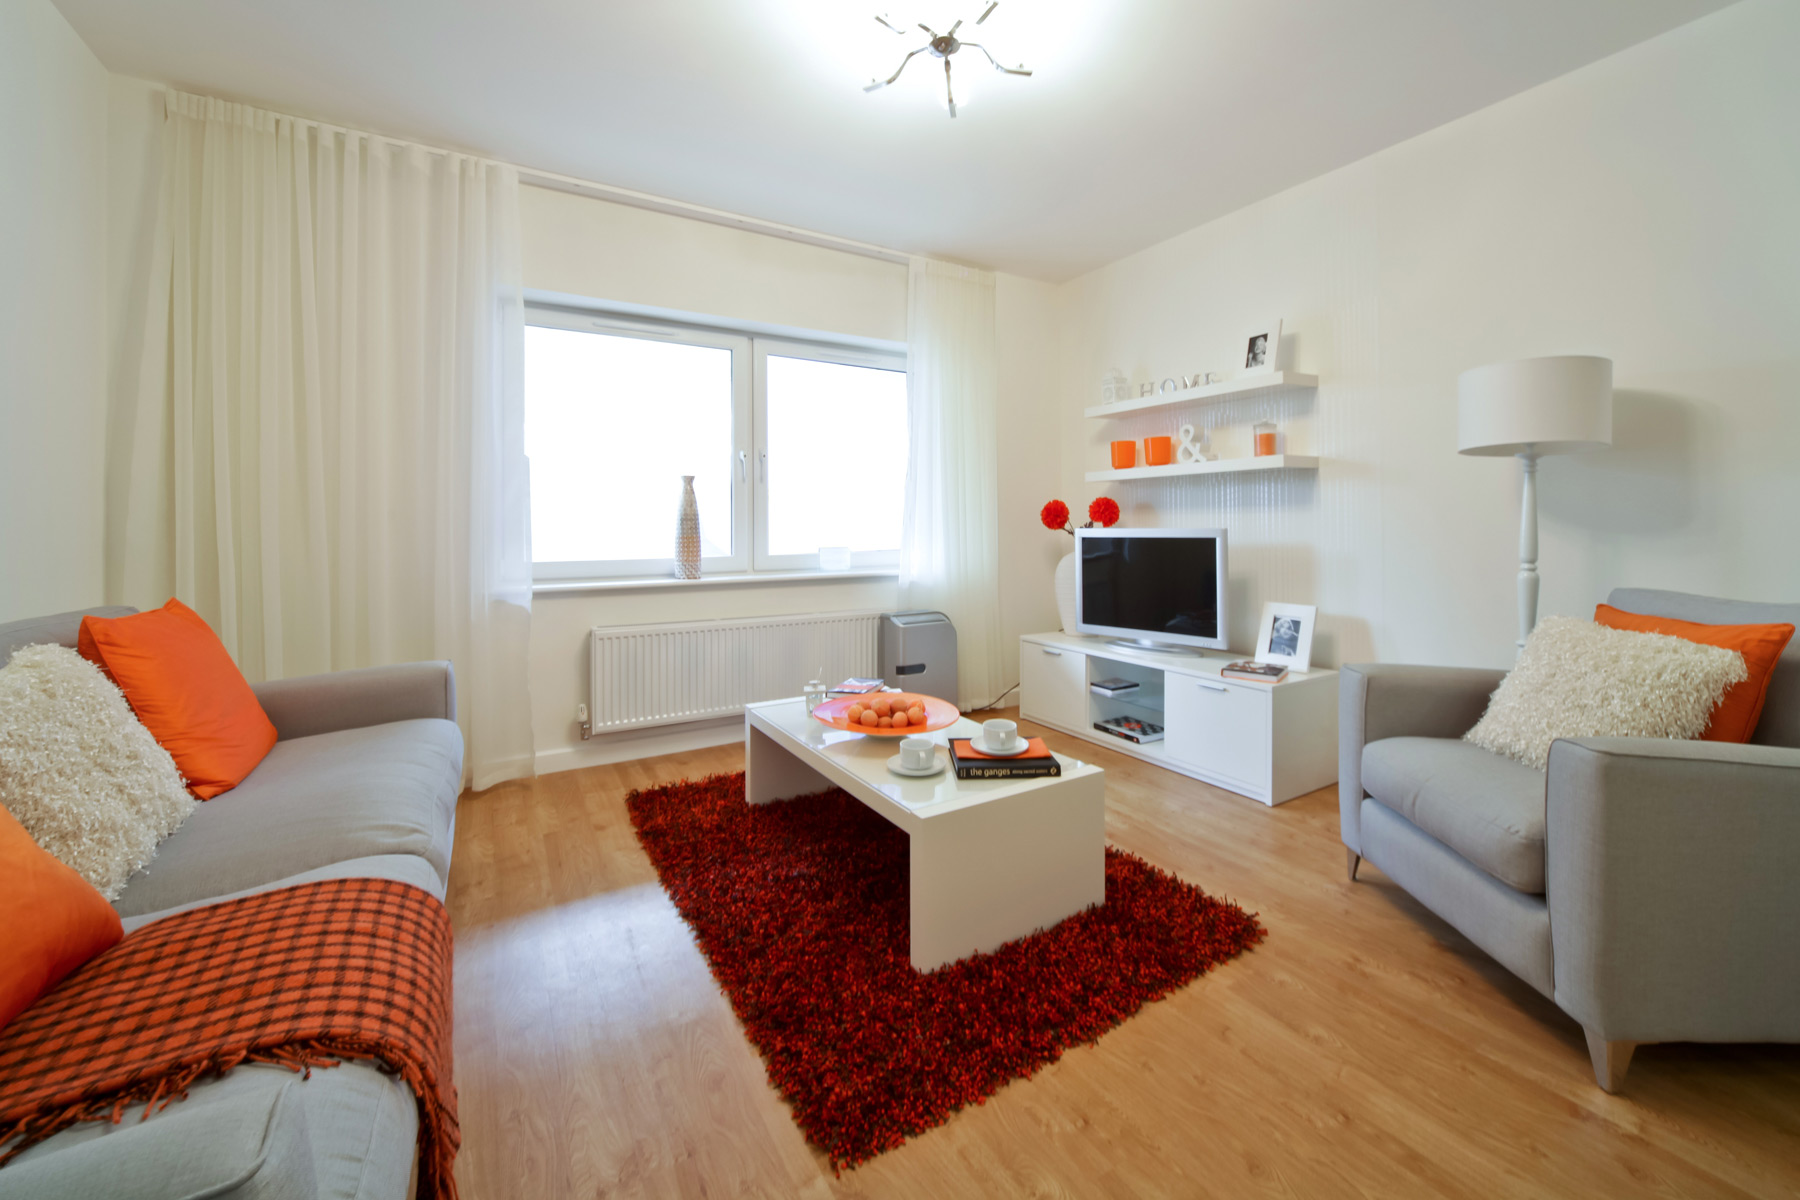 A typical Taylor Wimpey apartment living room.